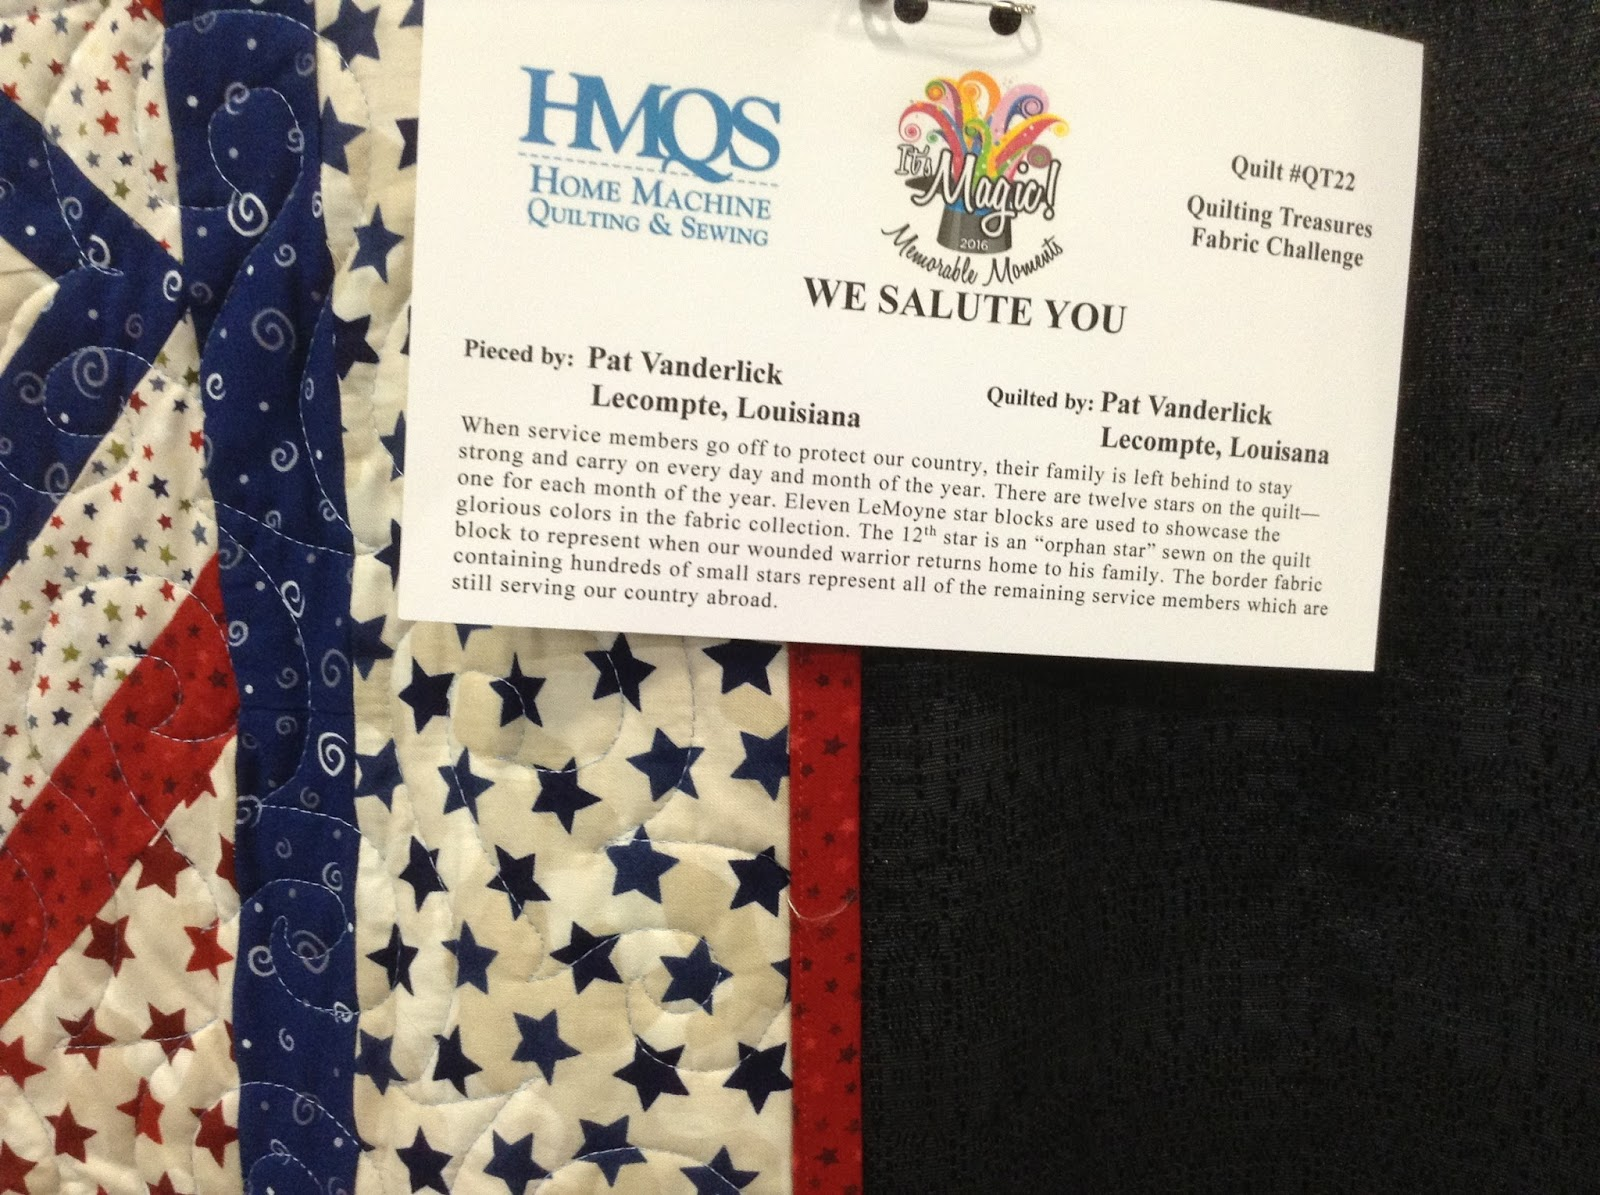 Timeless Traditions Honoring Those Who Serve